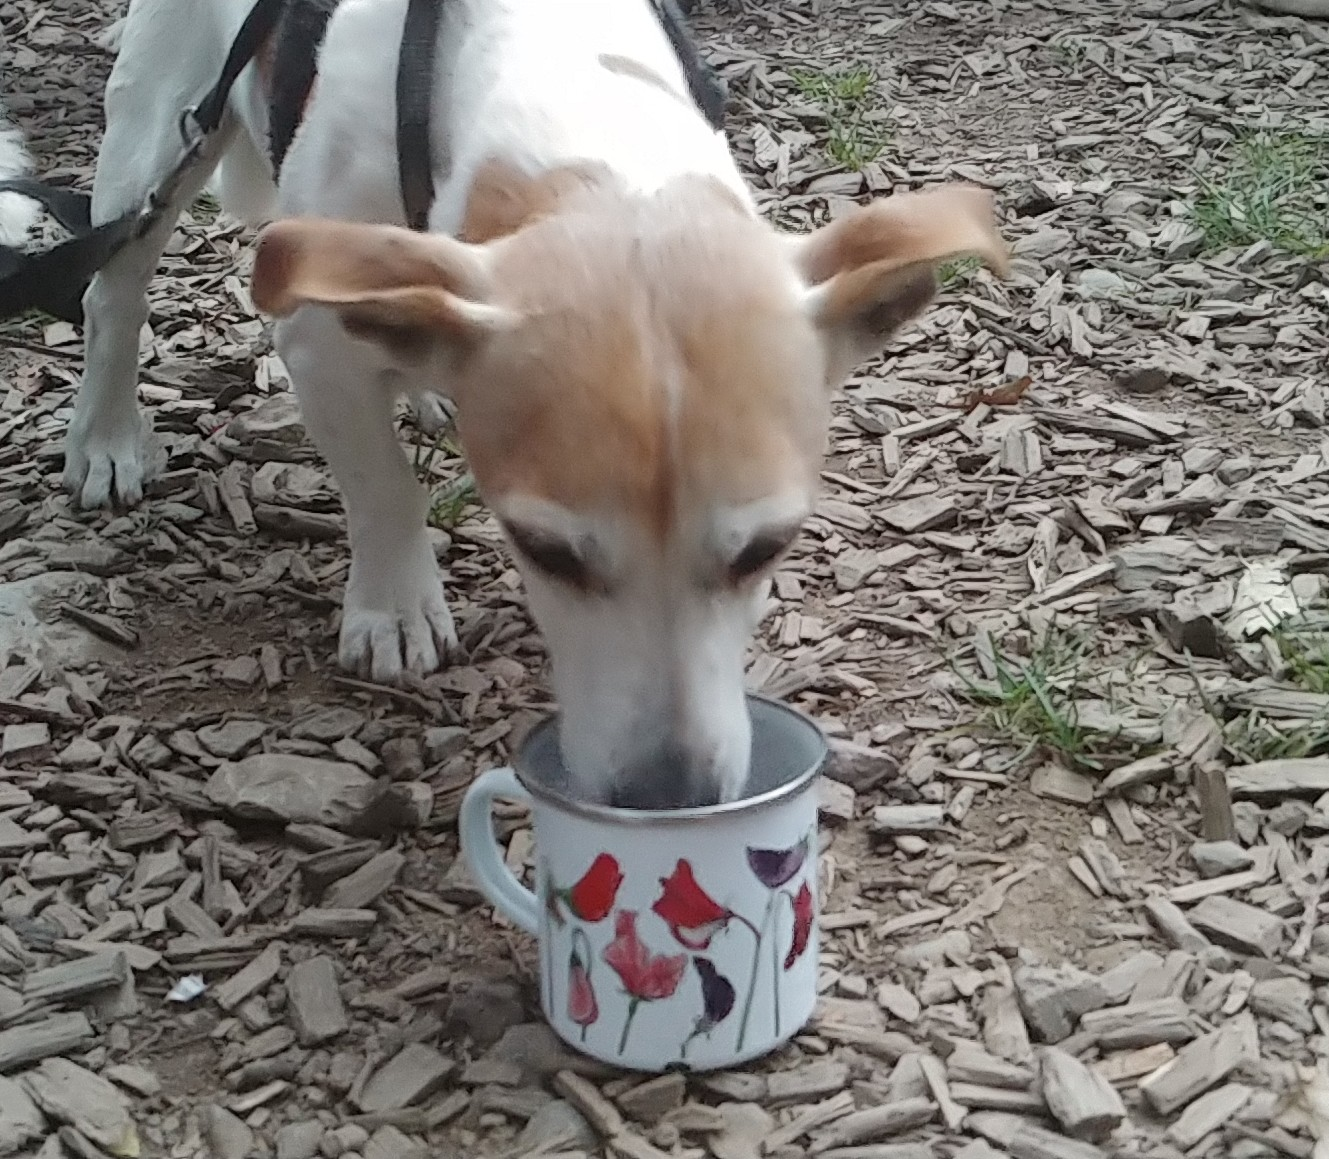 As soon as you put a cup down, someone drinks from it.